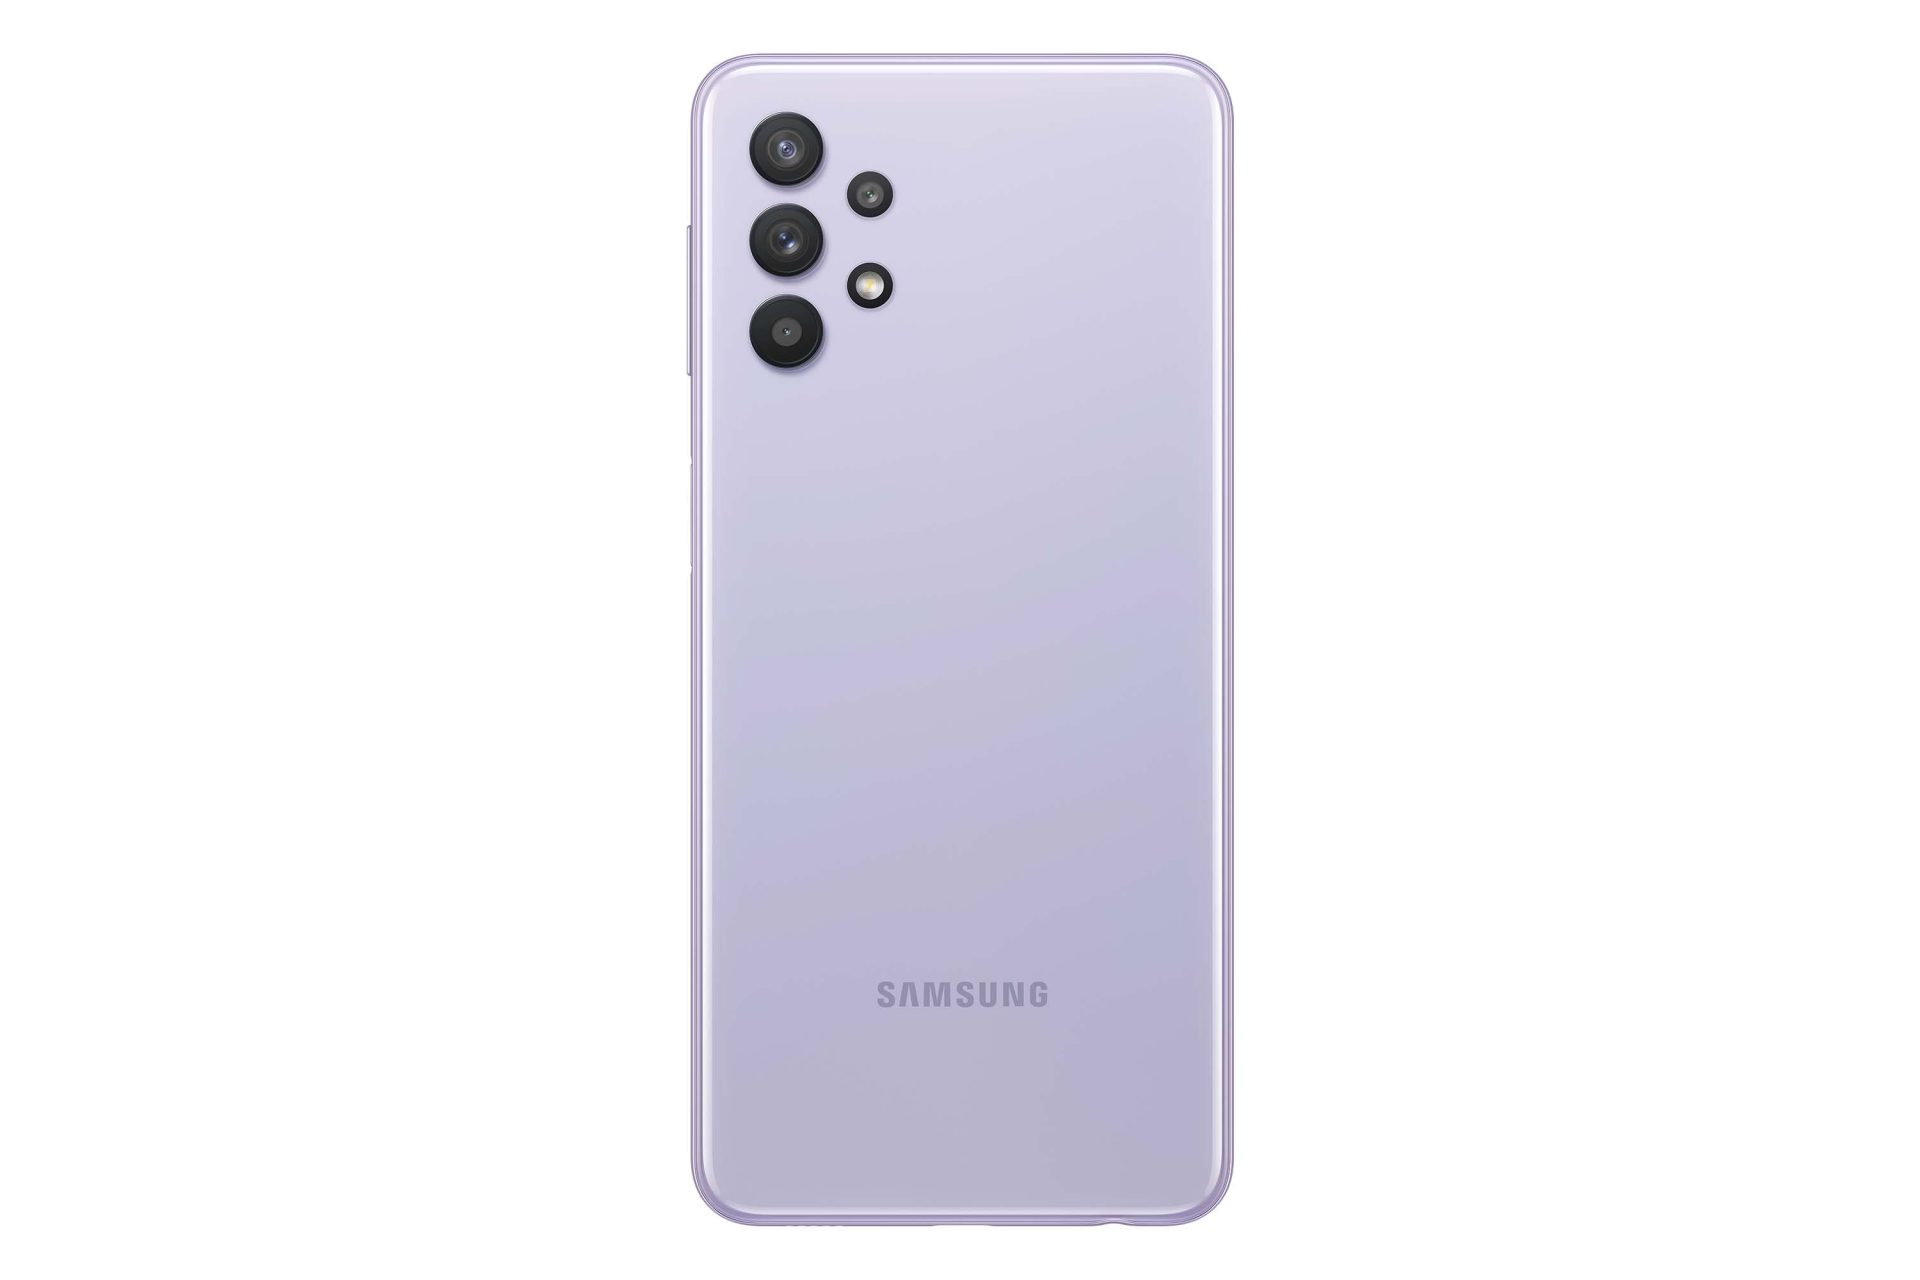 Samsung Galaxy A32 5G price feature and reviews in bd